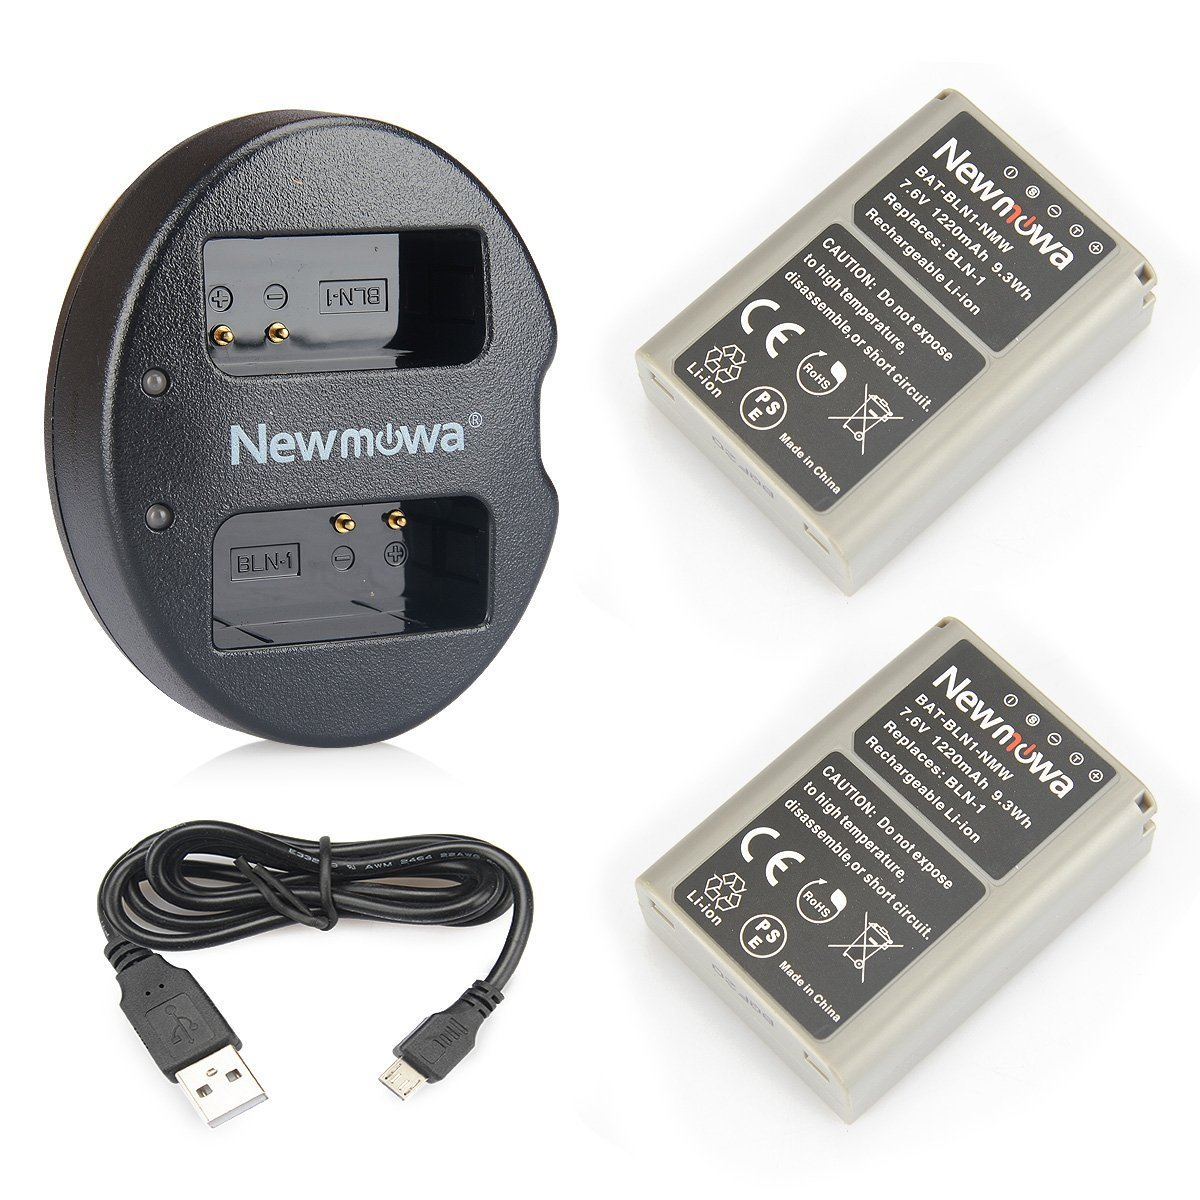 2-Pack and Dual USB Charger for Pentax D-LI90 and Pentax 645D K-3 K-5 II K-01 K-5 K-1 K-1 Mark II 645Z K-7 K-5 IIs Newmowa D-Li90 Battery